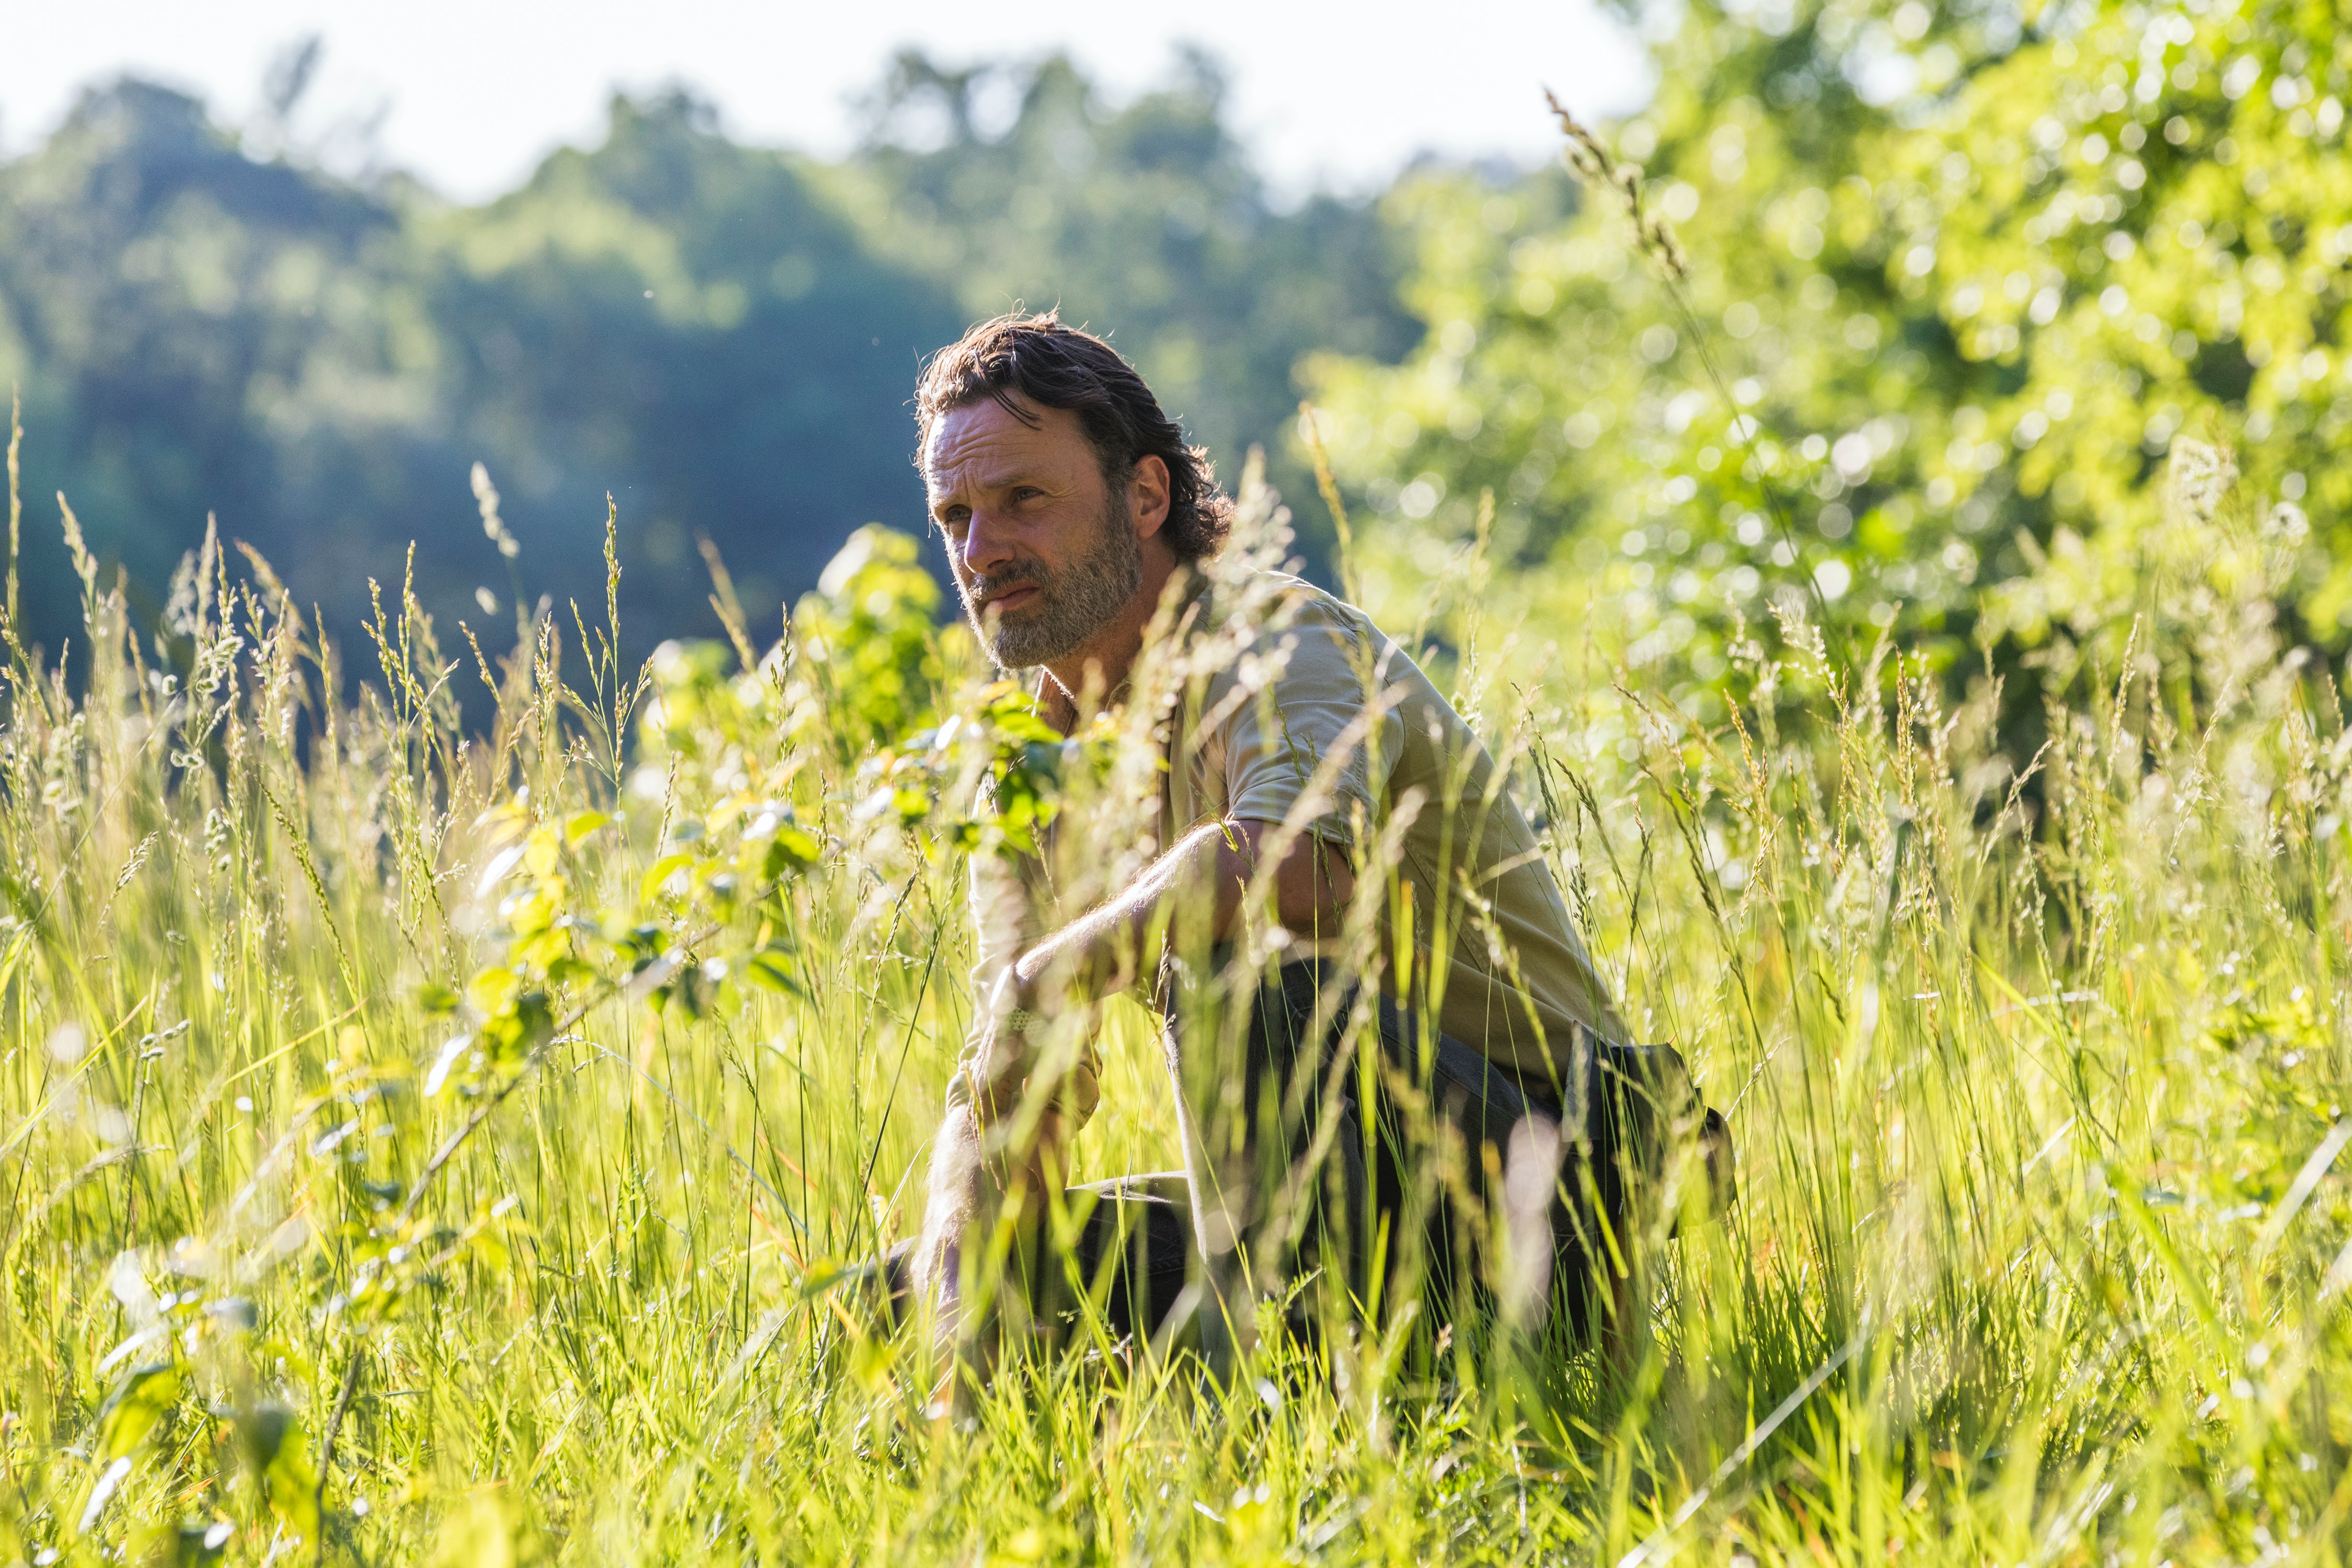 These Old Man Rick Theories About 'The Walking Dead' Season 8 Will Make You Question Everything Jackson Lee Davis  AMC